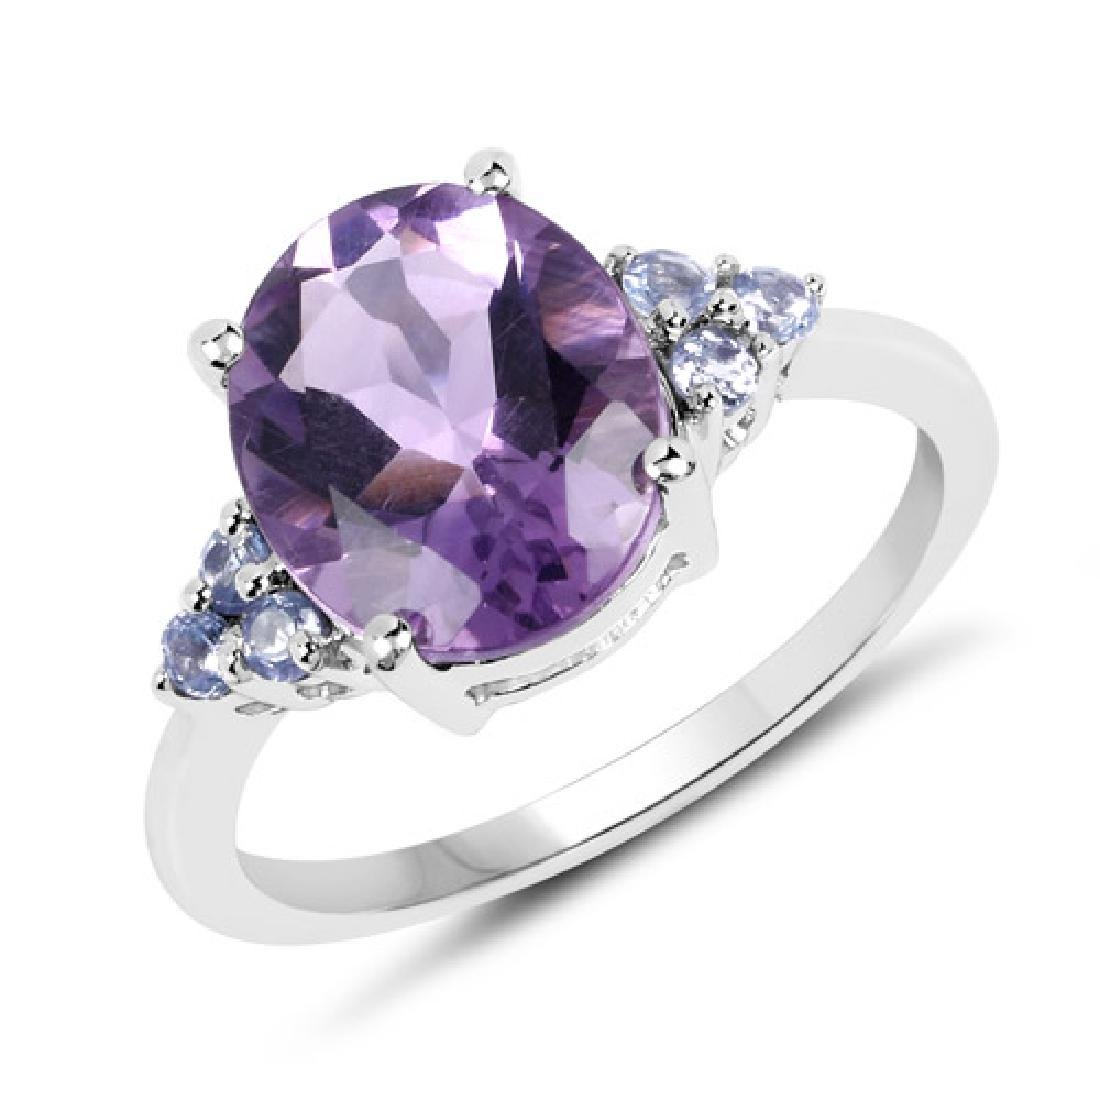 3.41 Carat Genuine Amethyst and Tanzanite .925 Sterling